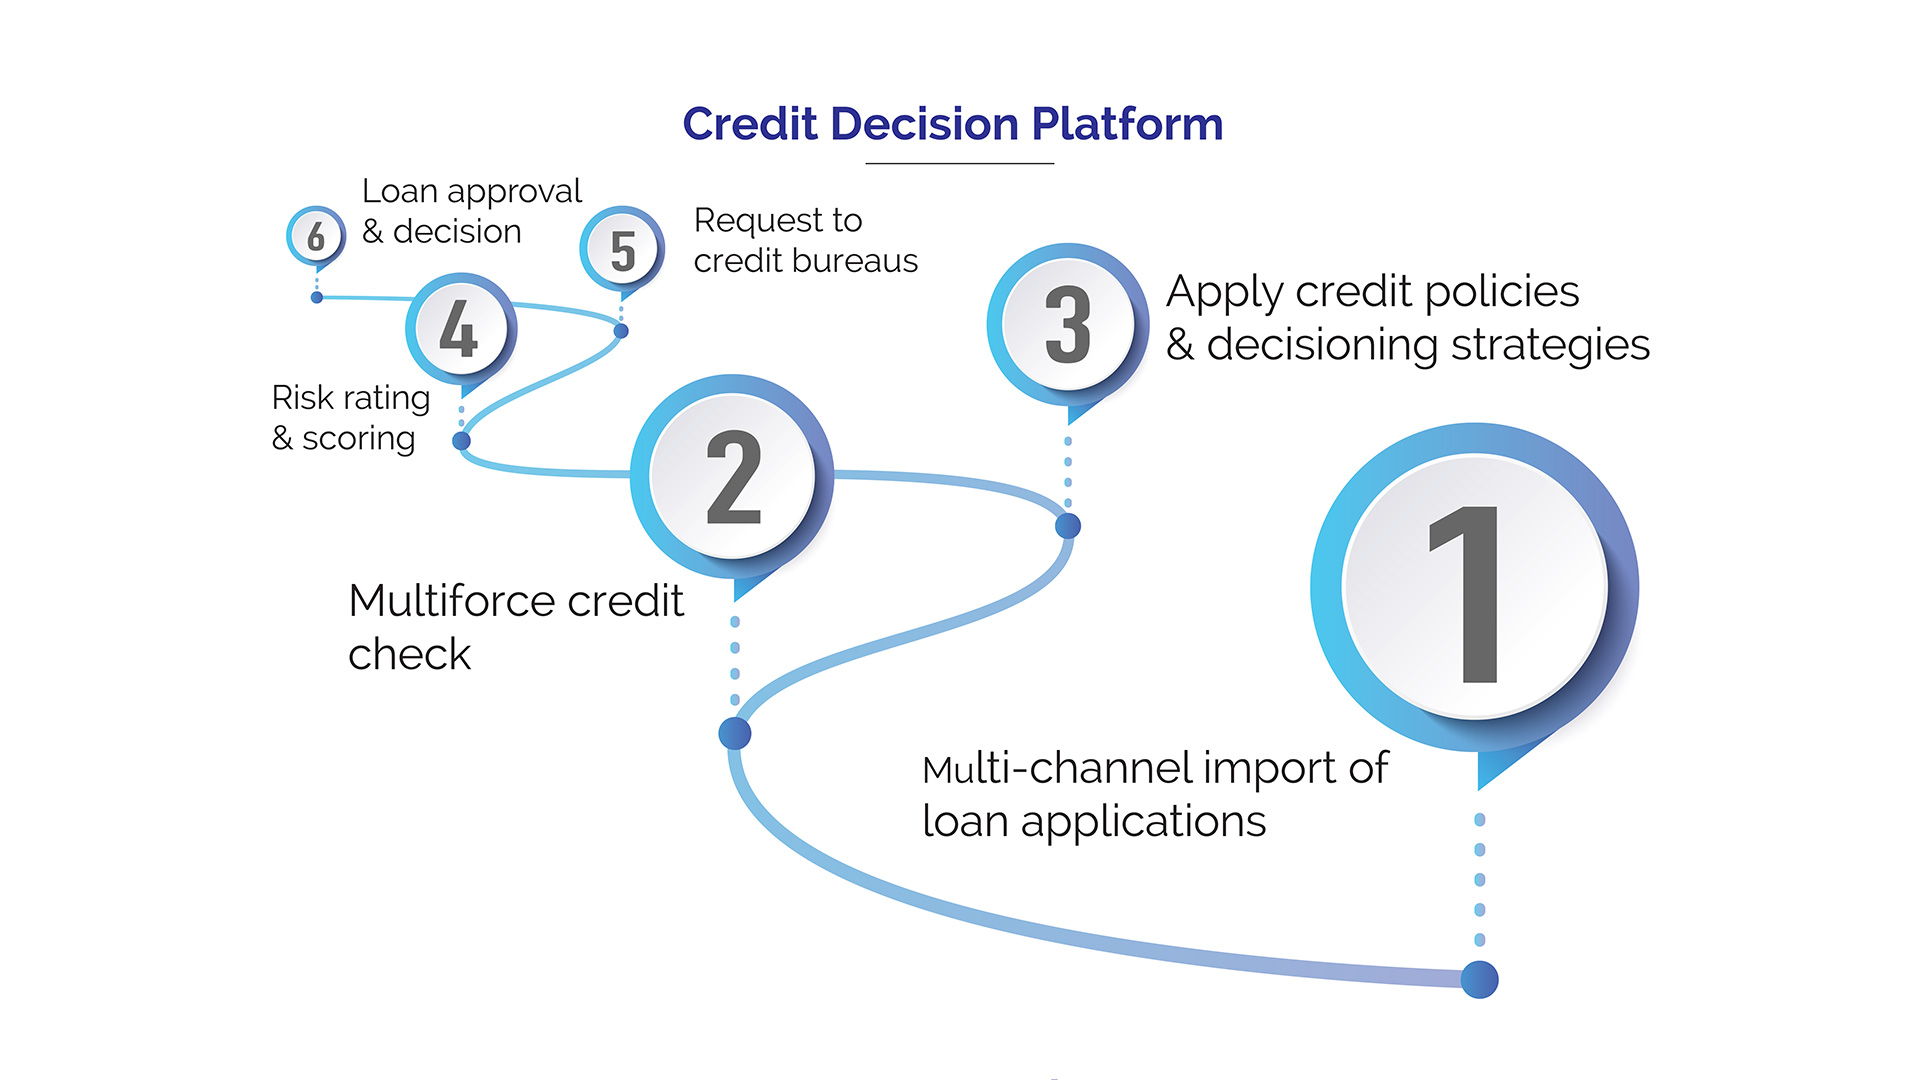 Instant Loan in 1 Hour-Credit decision